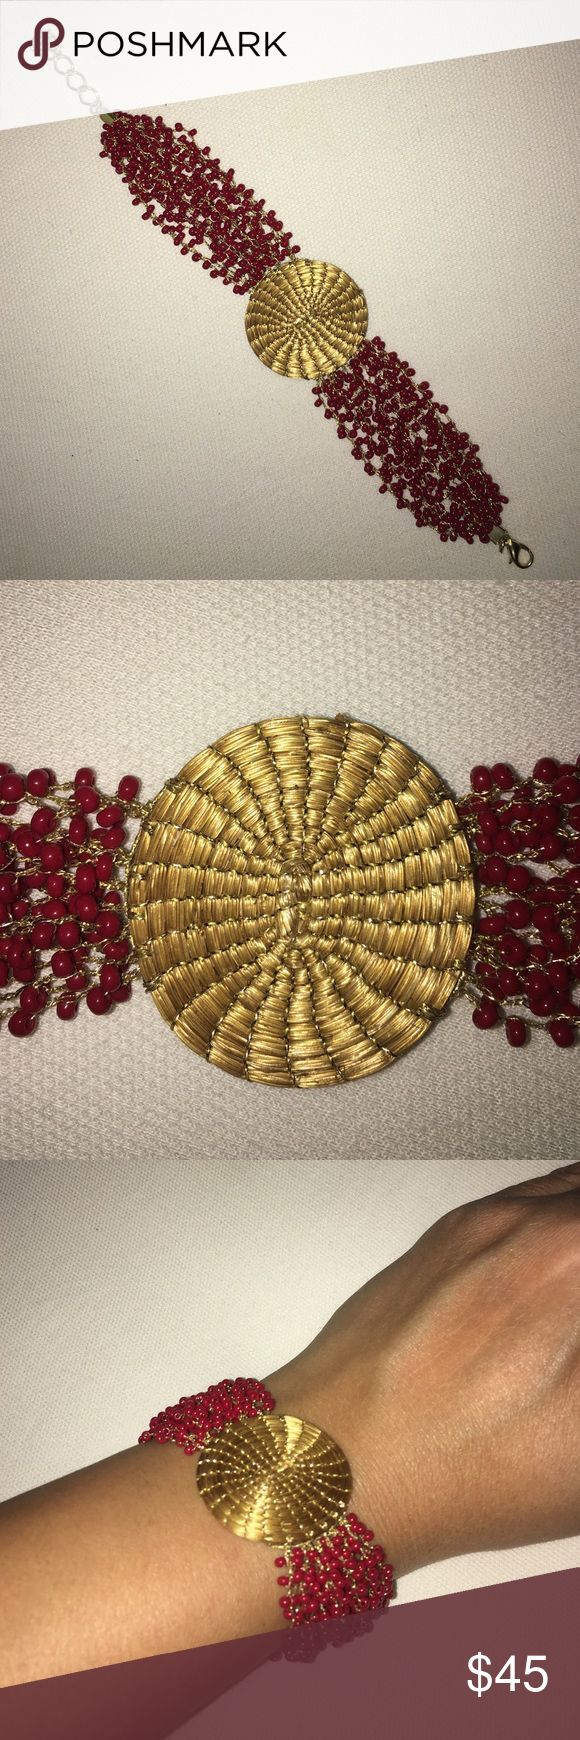 GOLDEN GRASS and red garnet gemstones bracelet This listing does not include handbag. Golden grass and gemstone bracelet. Beautiful sporty chic bracelet. Gold plated. Made in Brazil, and purchased there. Item will be videotaped prior to shipping to ensure proof of condition. Jewelry Bracelets